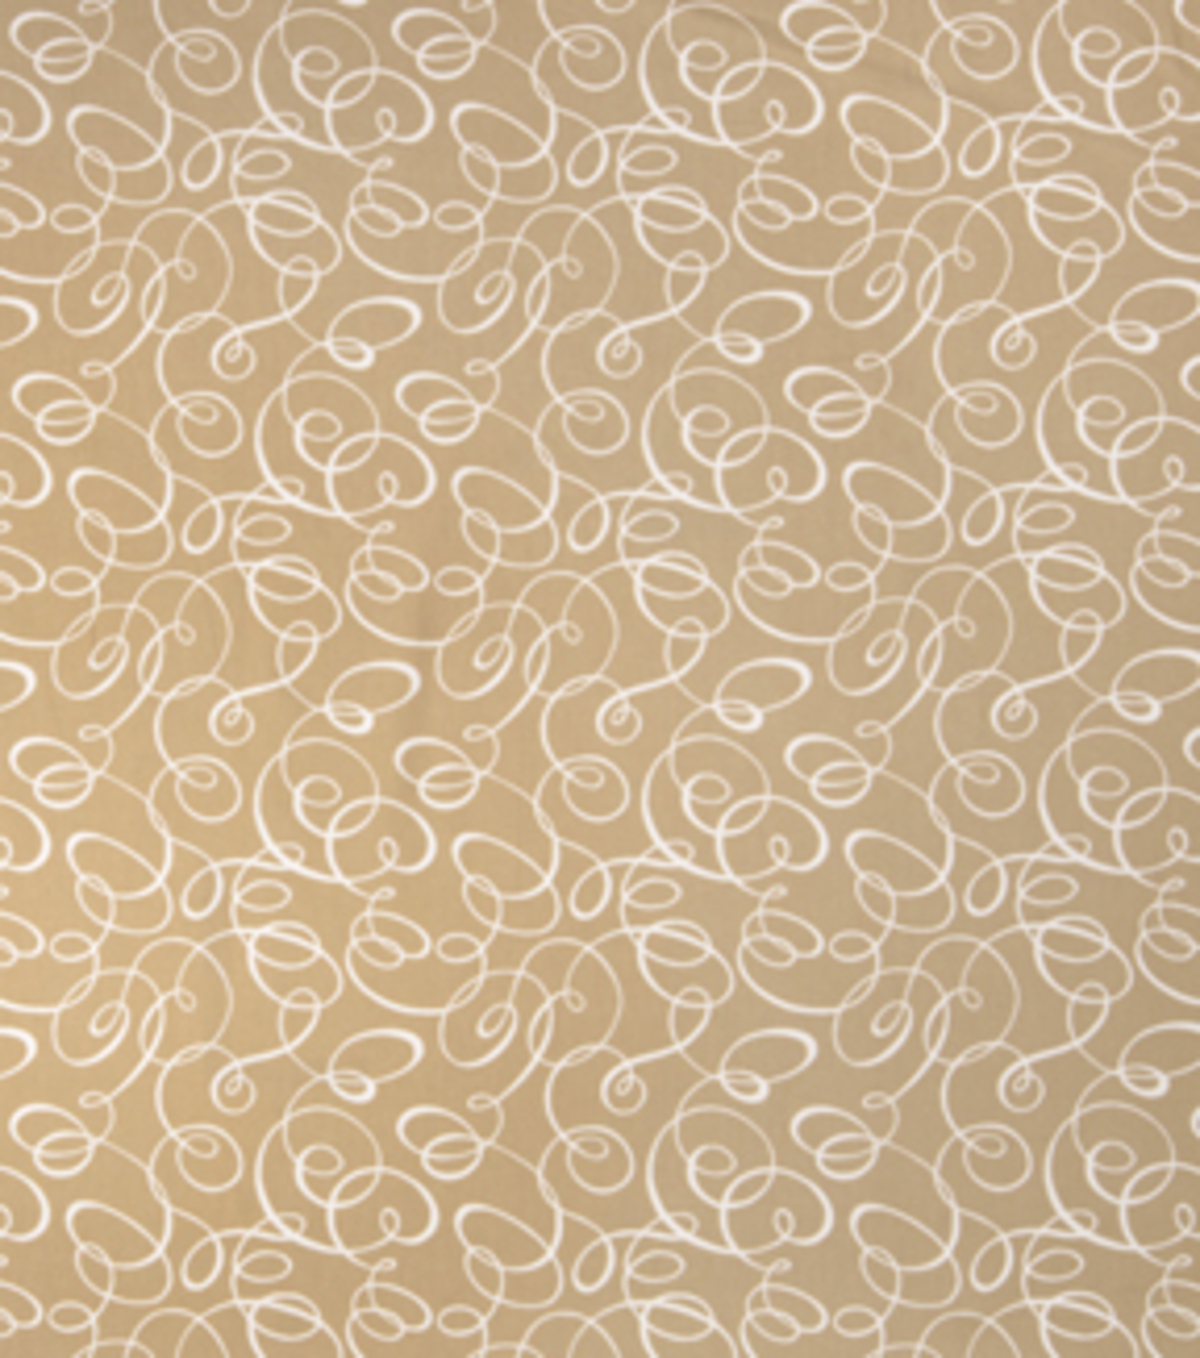 Home Decor 8\u0022x8\u0022 Fabric Swatch-SMC Designs Brazil / Buckwheat